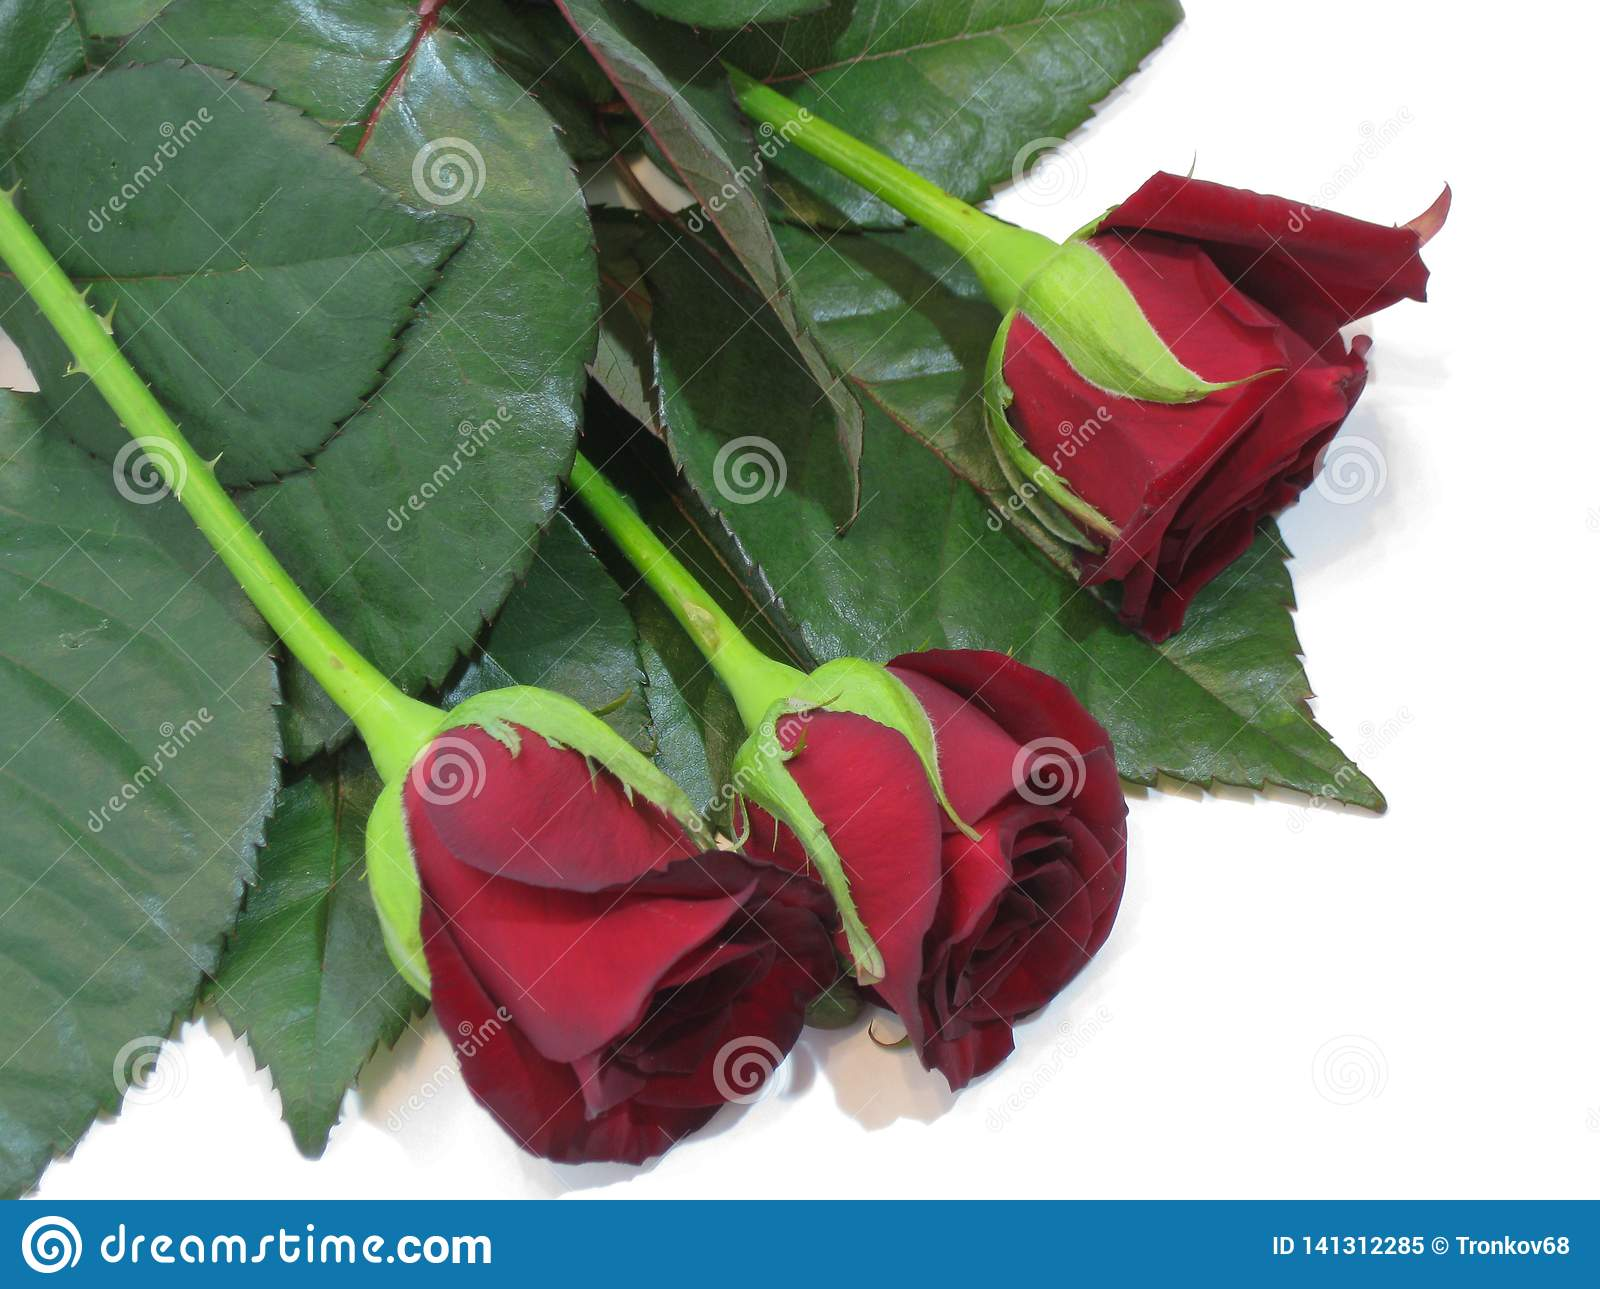 Spring, summer, velvety rose petals excite the imagination and attract the eye